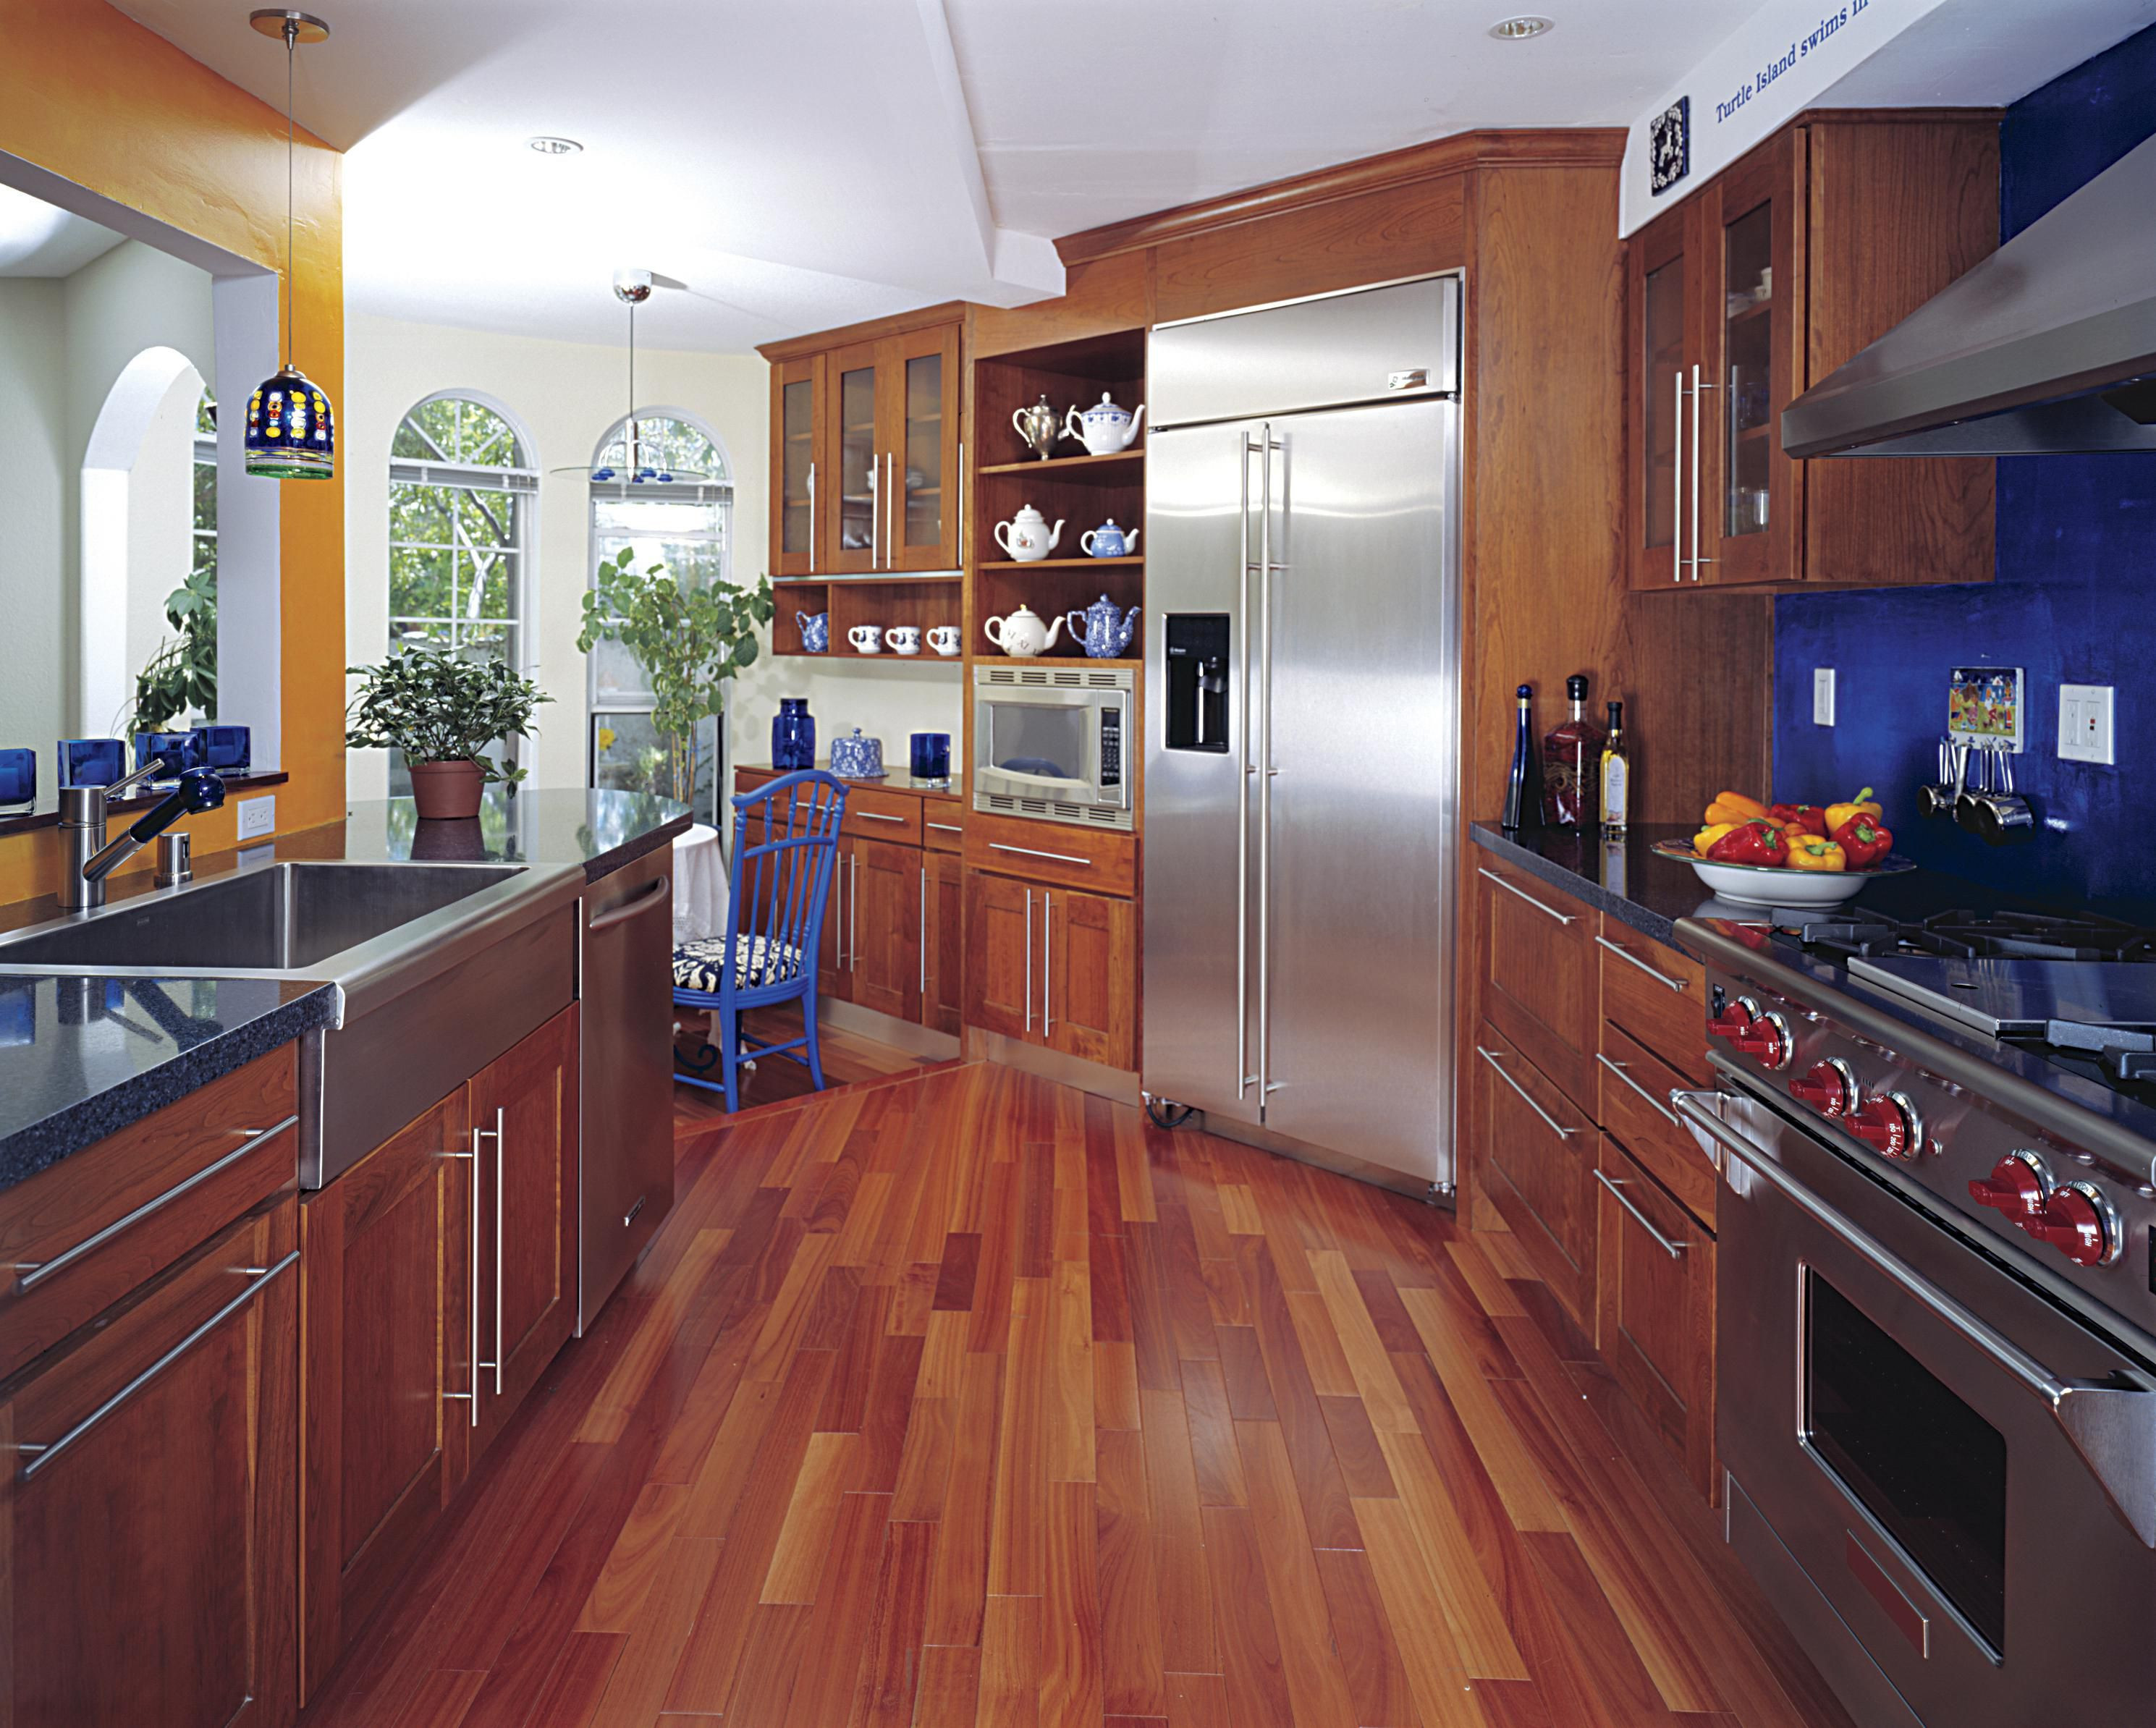 carpet runners for hardwood floors of hardwood floor in a kitchen is this allowed regarding 186828472 56a49f3a5f9b58b7d0d7e142